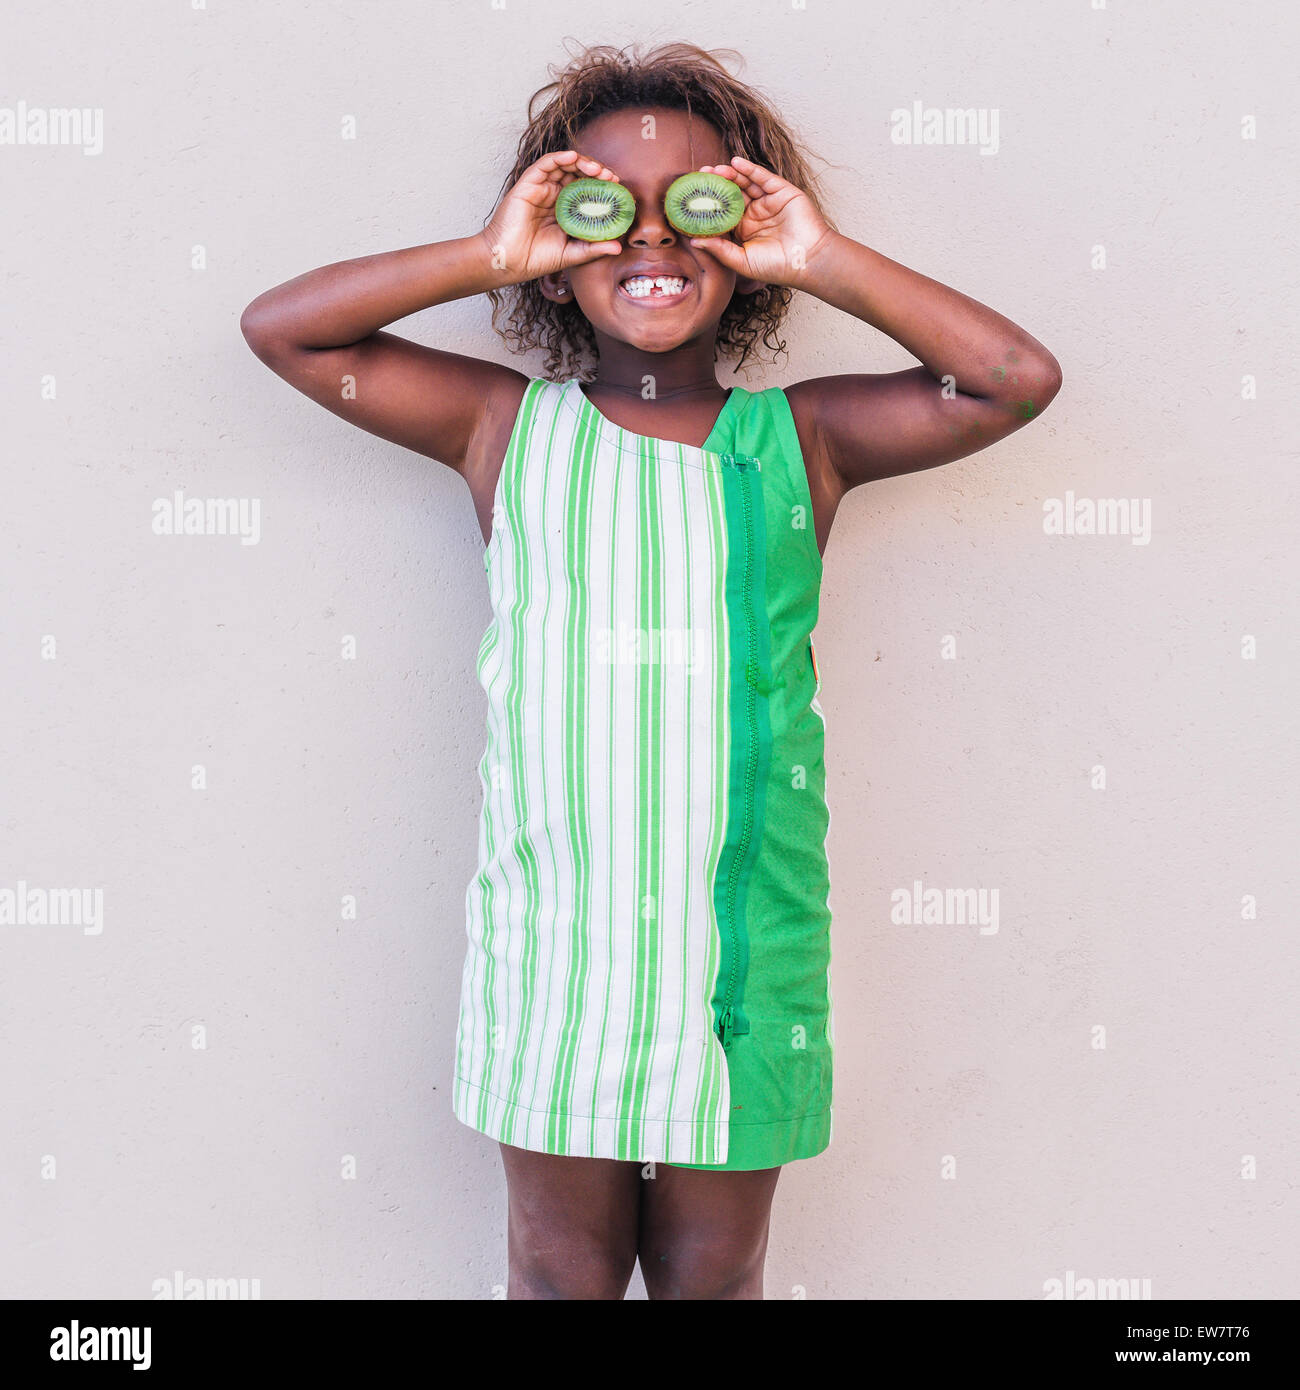 Smiling girl in green dress holding kiwi fruit in front of her eyes - Stock Image